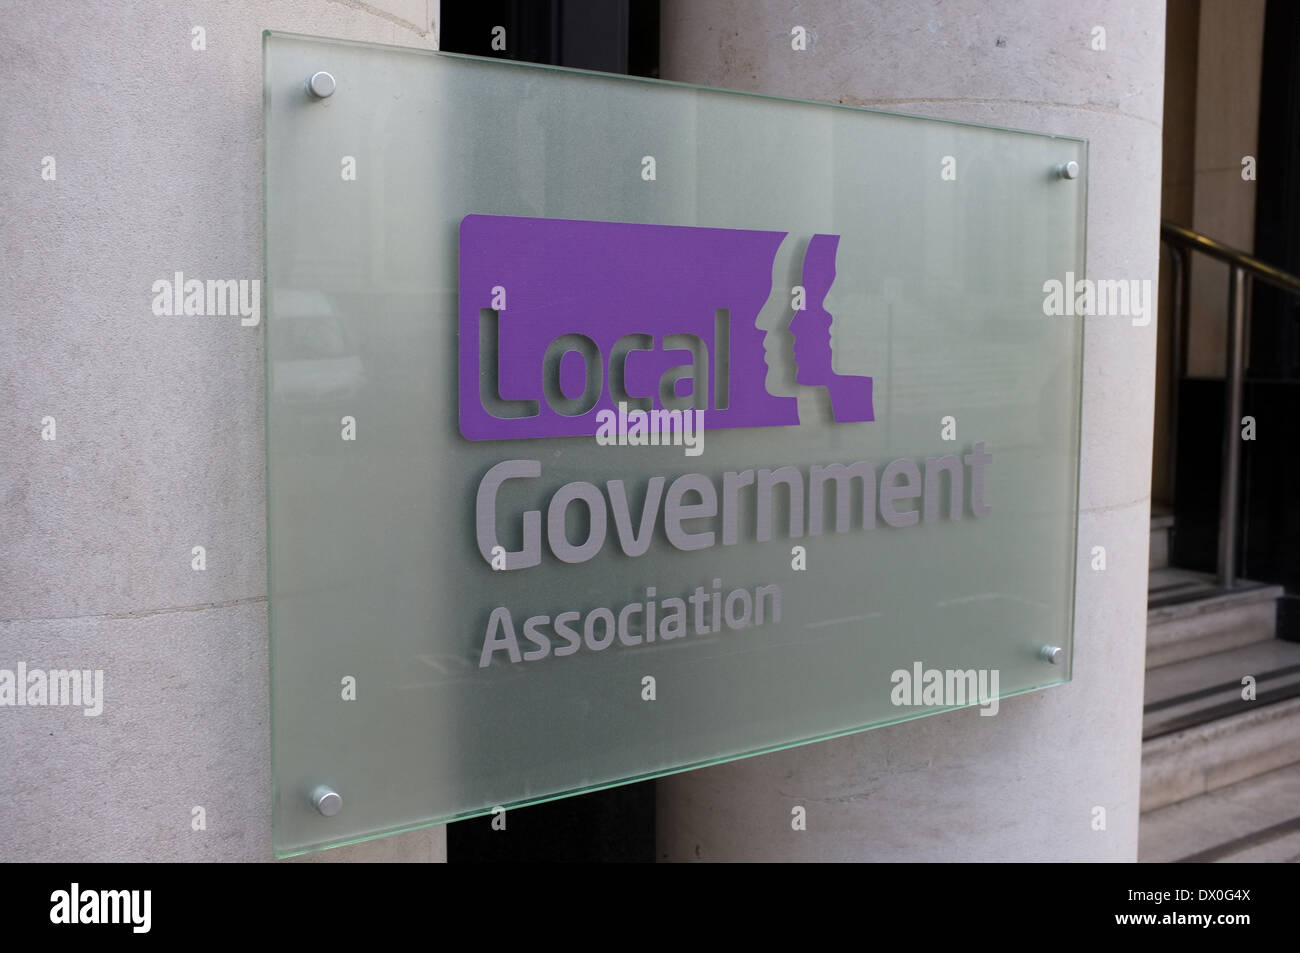 local government association smith square westminster london sw1 2014 - Stock Image